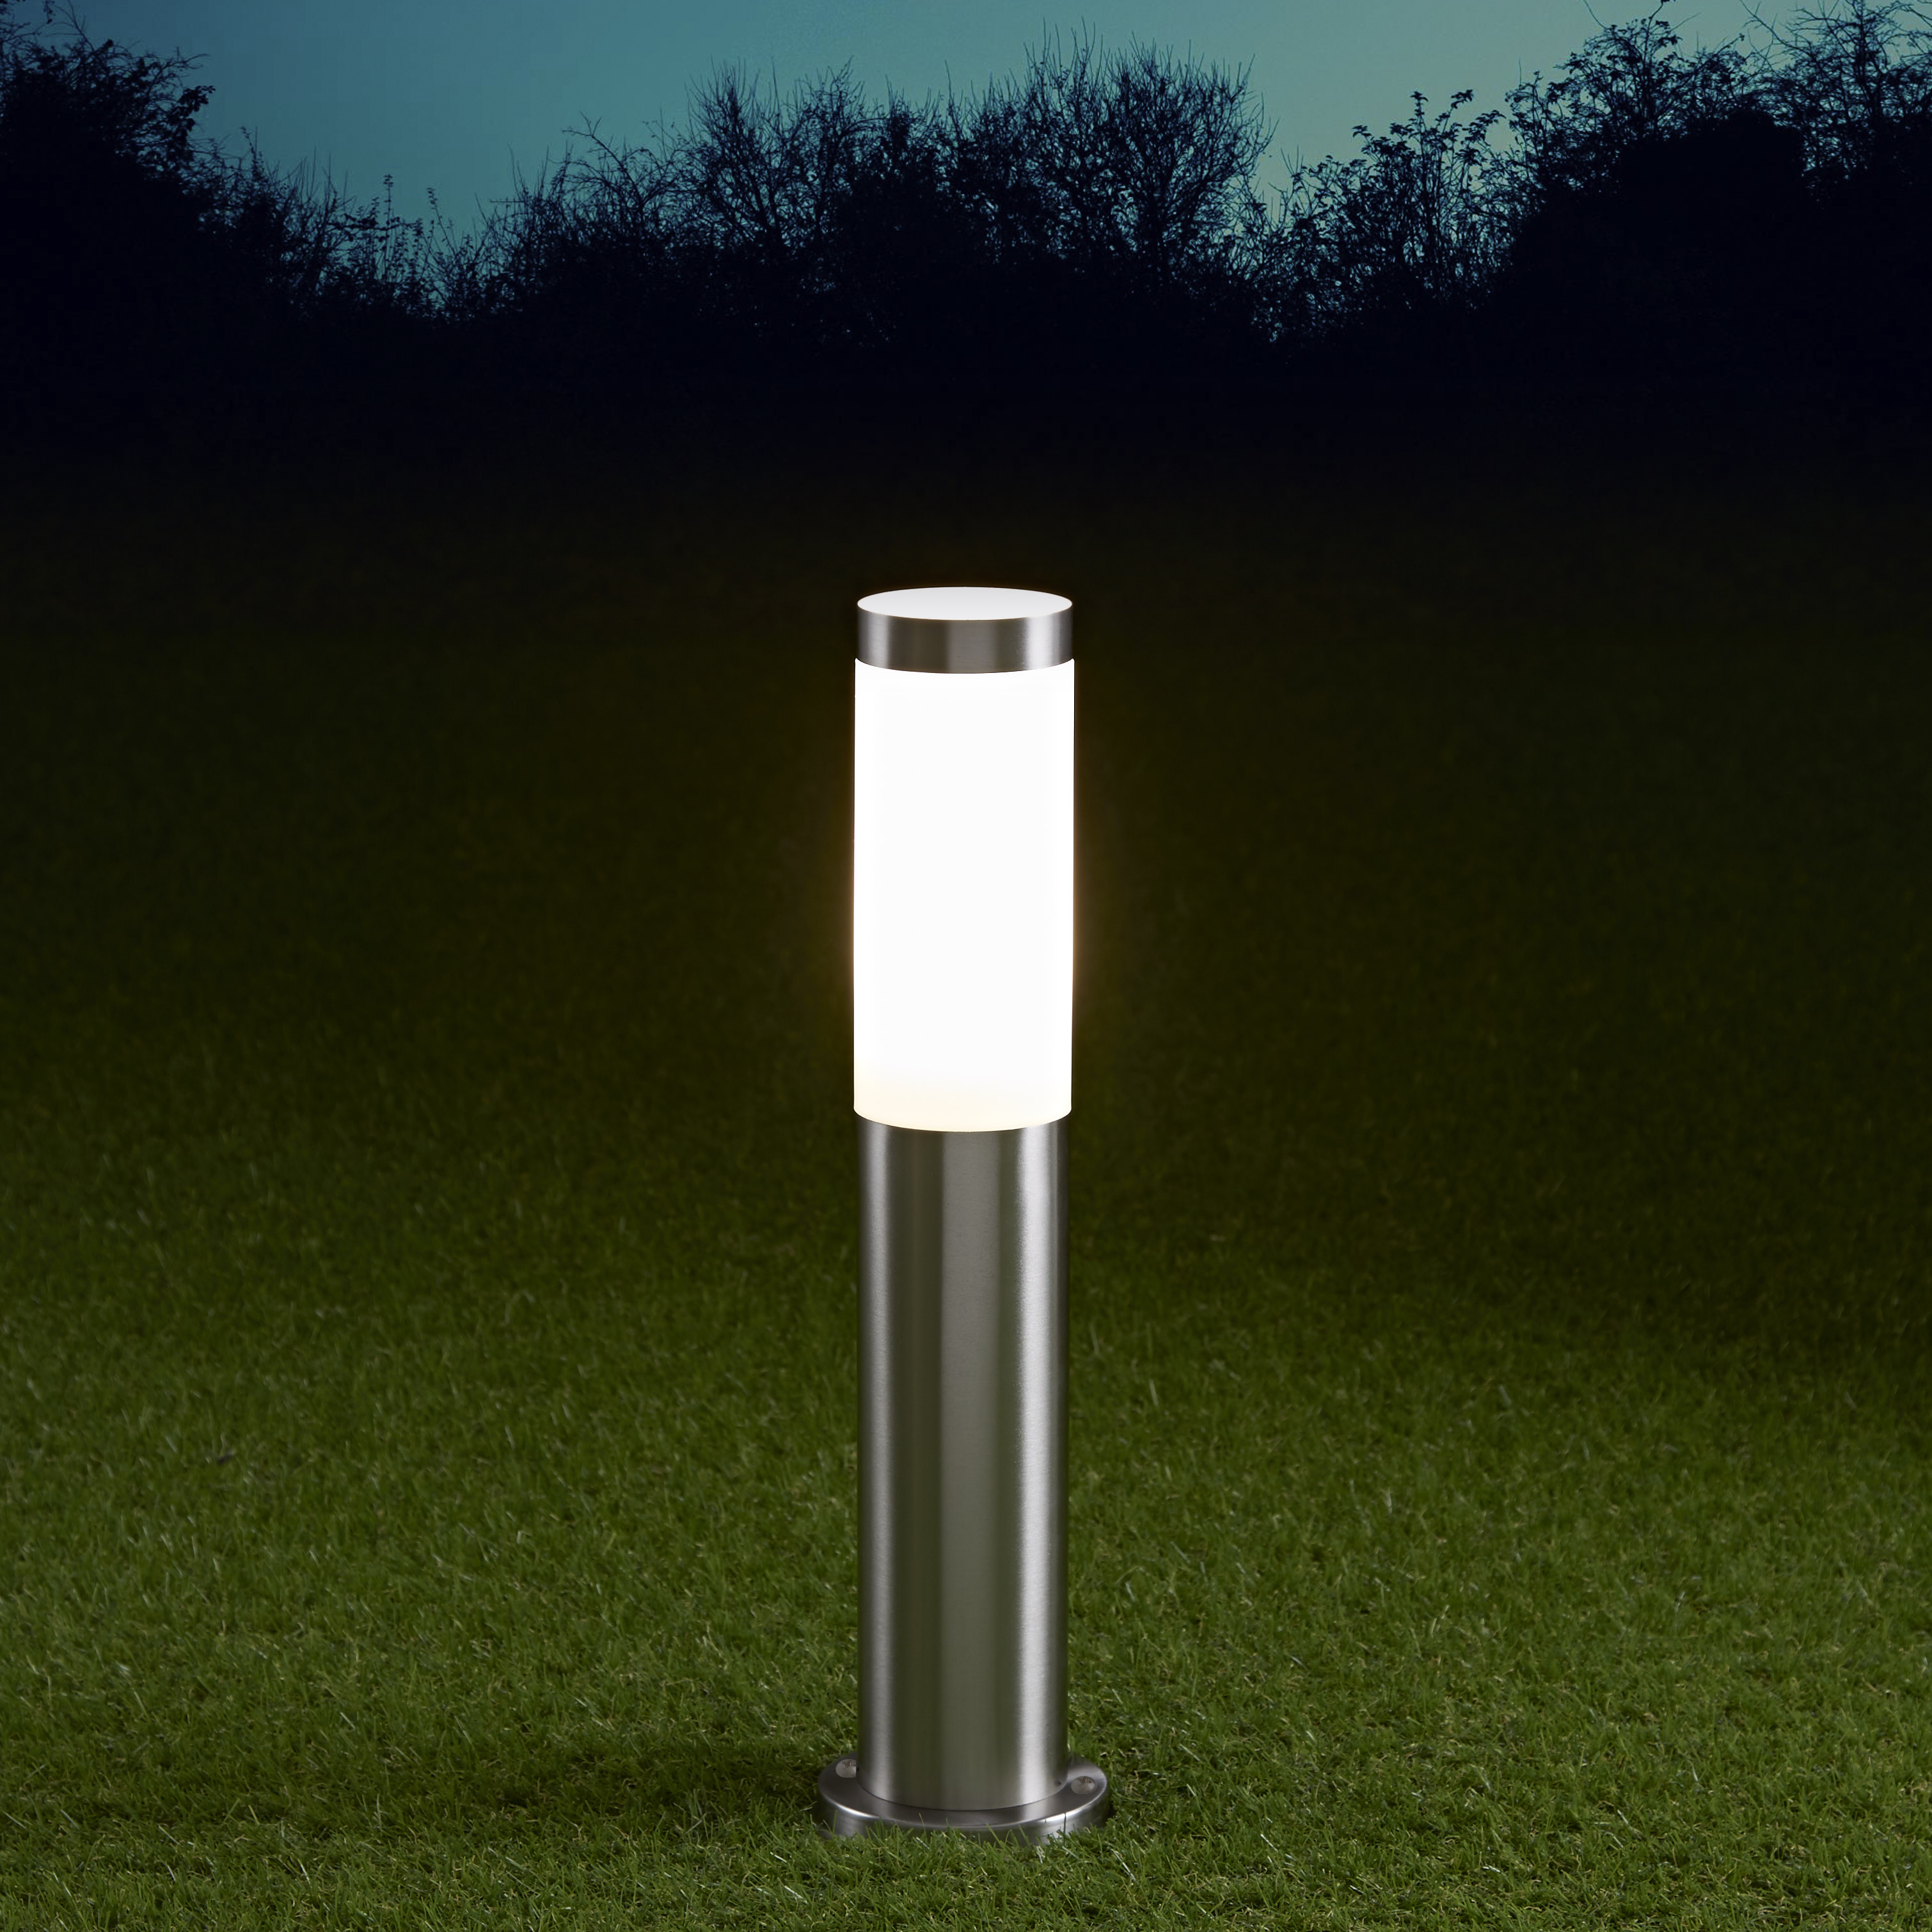 Biard Le Mans IP44 Bollard Light - 450mm